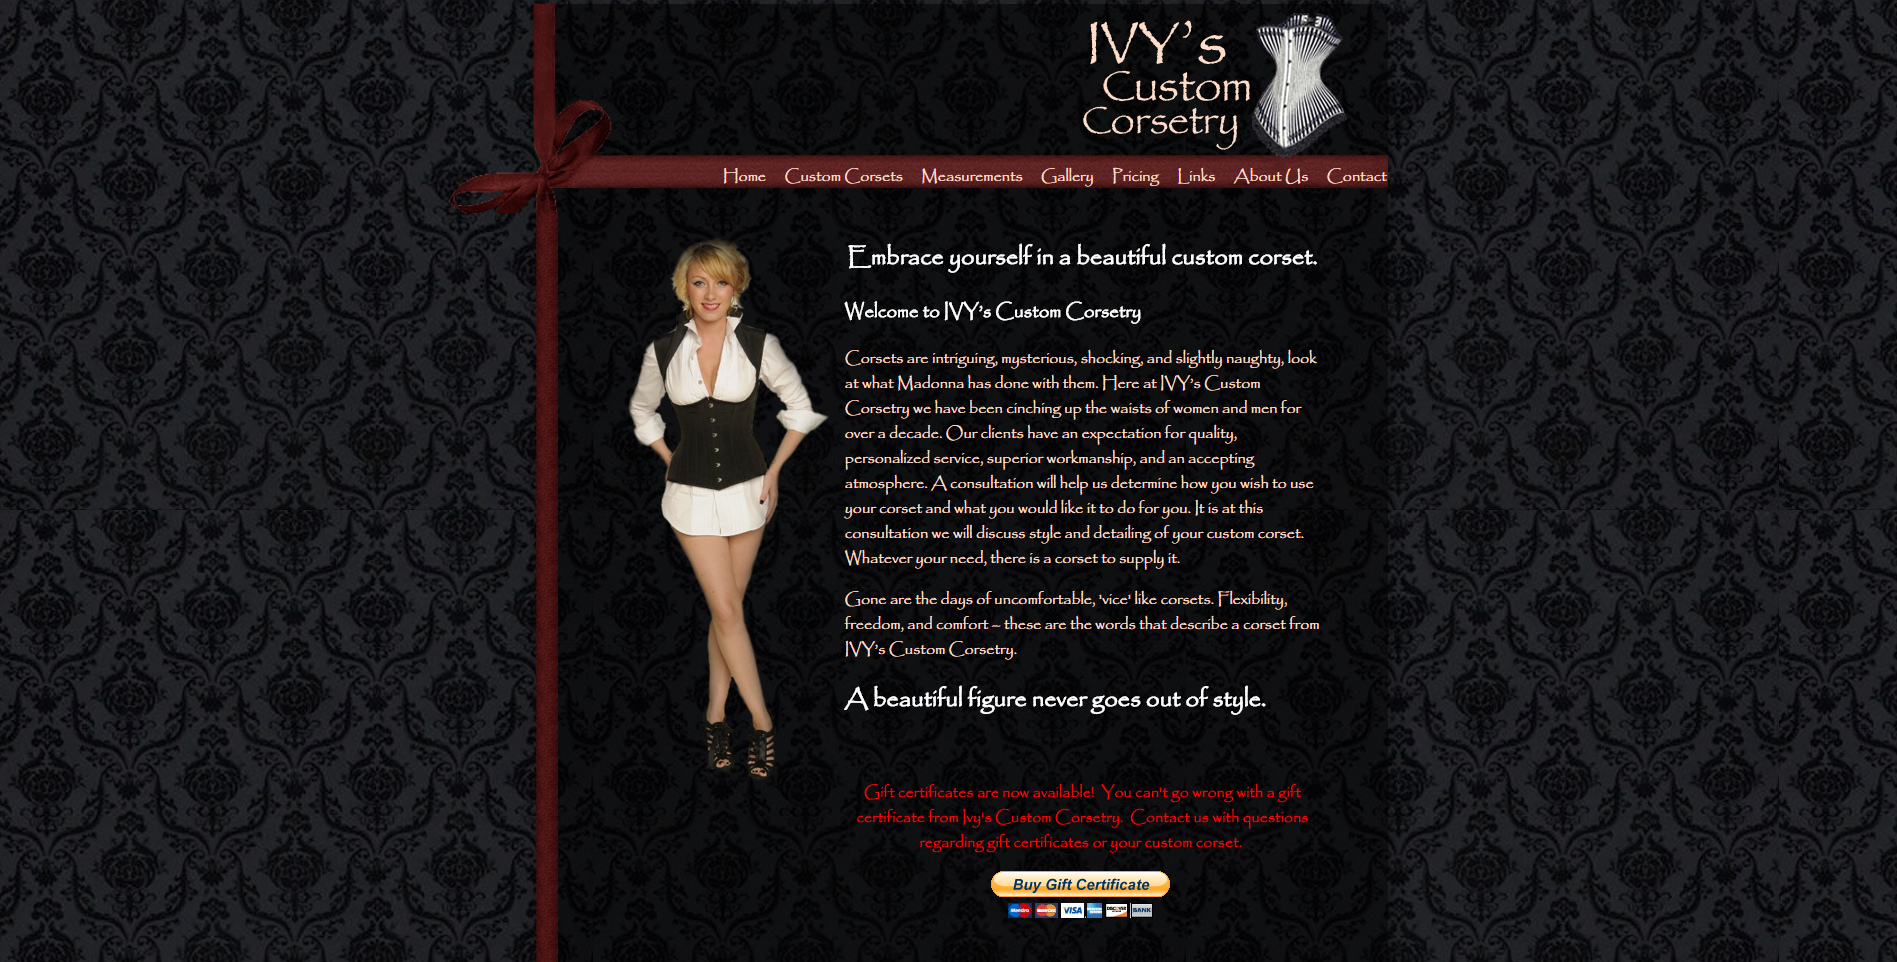 Ivys Corsets Screenshot